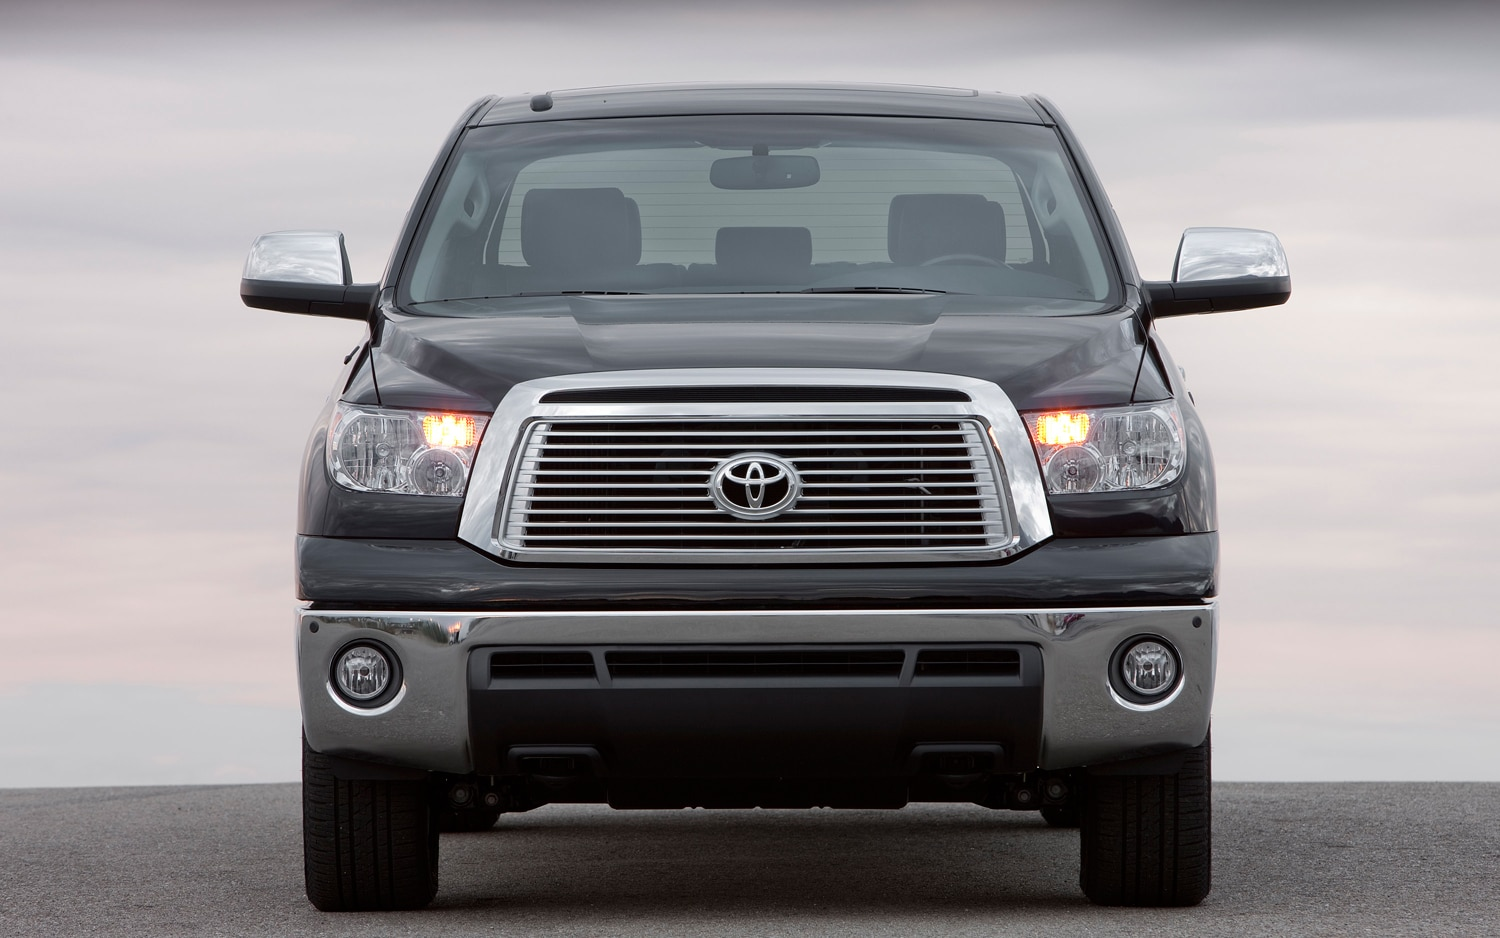 2011 Toyota Tundra Front View1